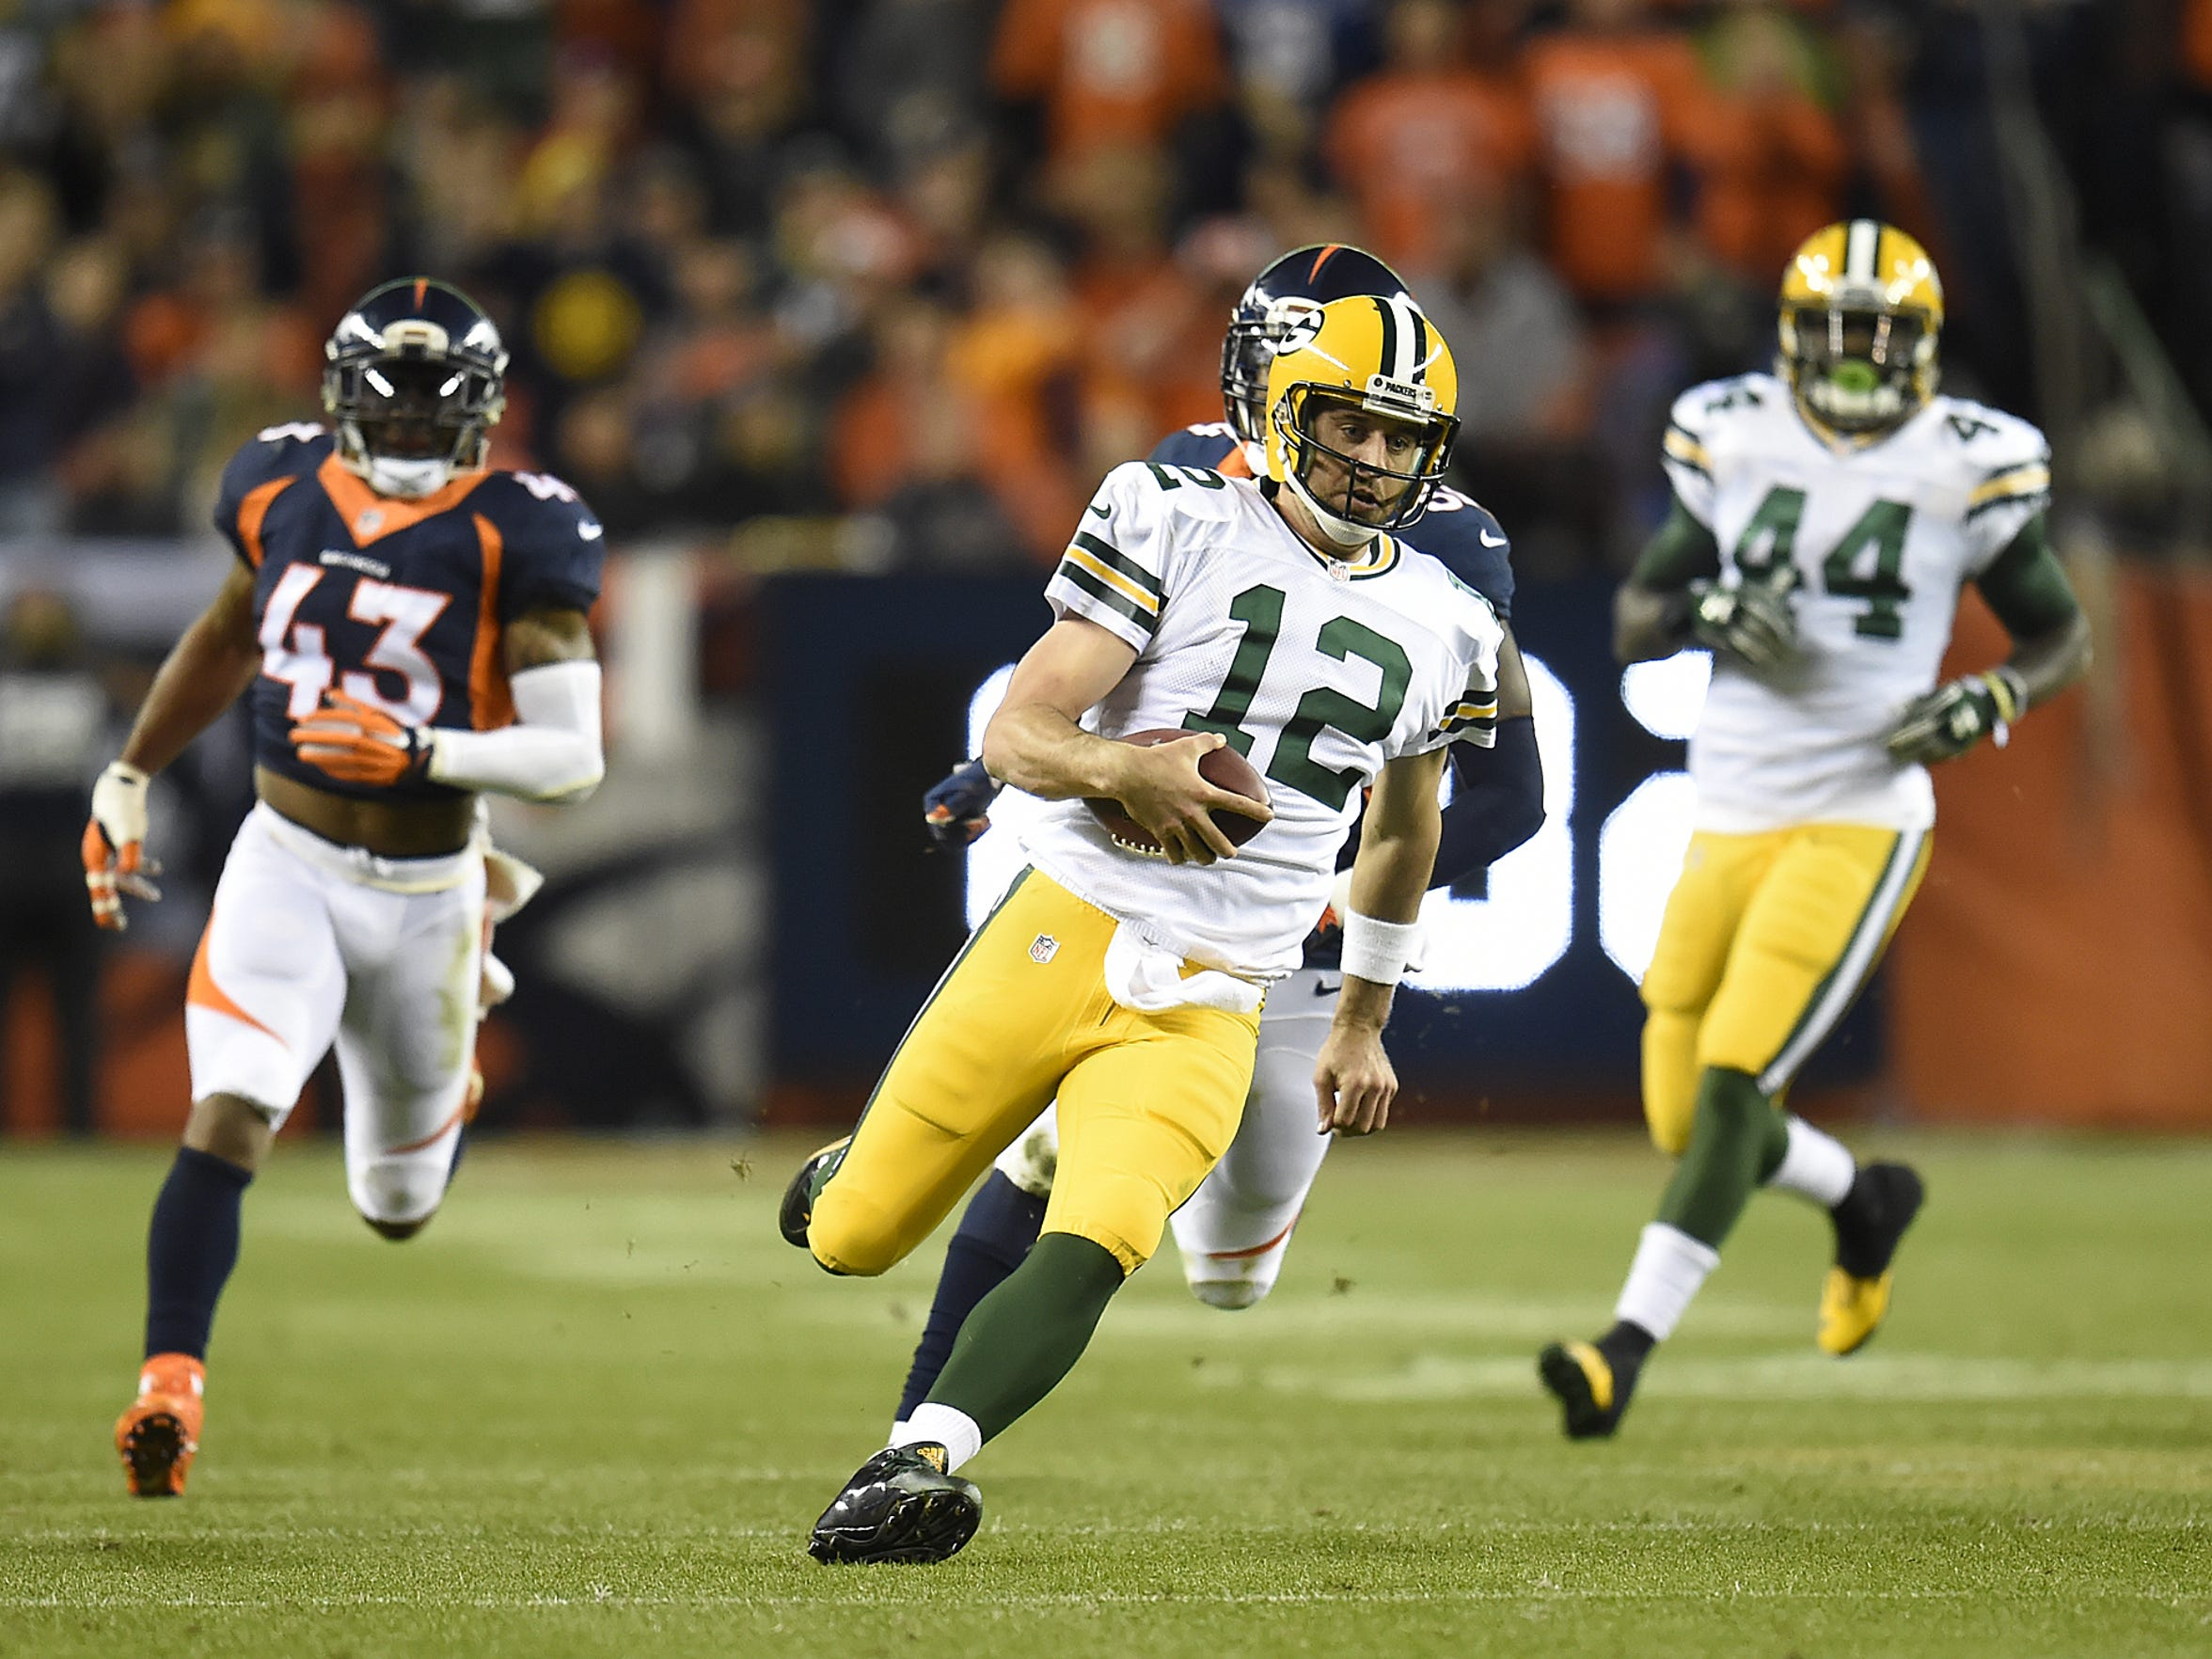 Green Bay Packers quarterback Aaron Rodgers (12) runs with the ball against the Denver Broncos during Sunday night's game at Sports Authority Field in Denver, Colo. Photo by Evan Siegle/P-G Media